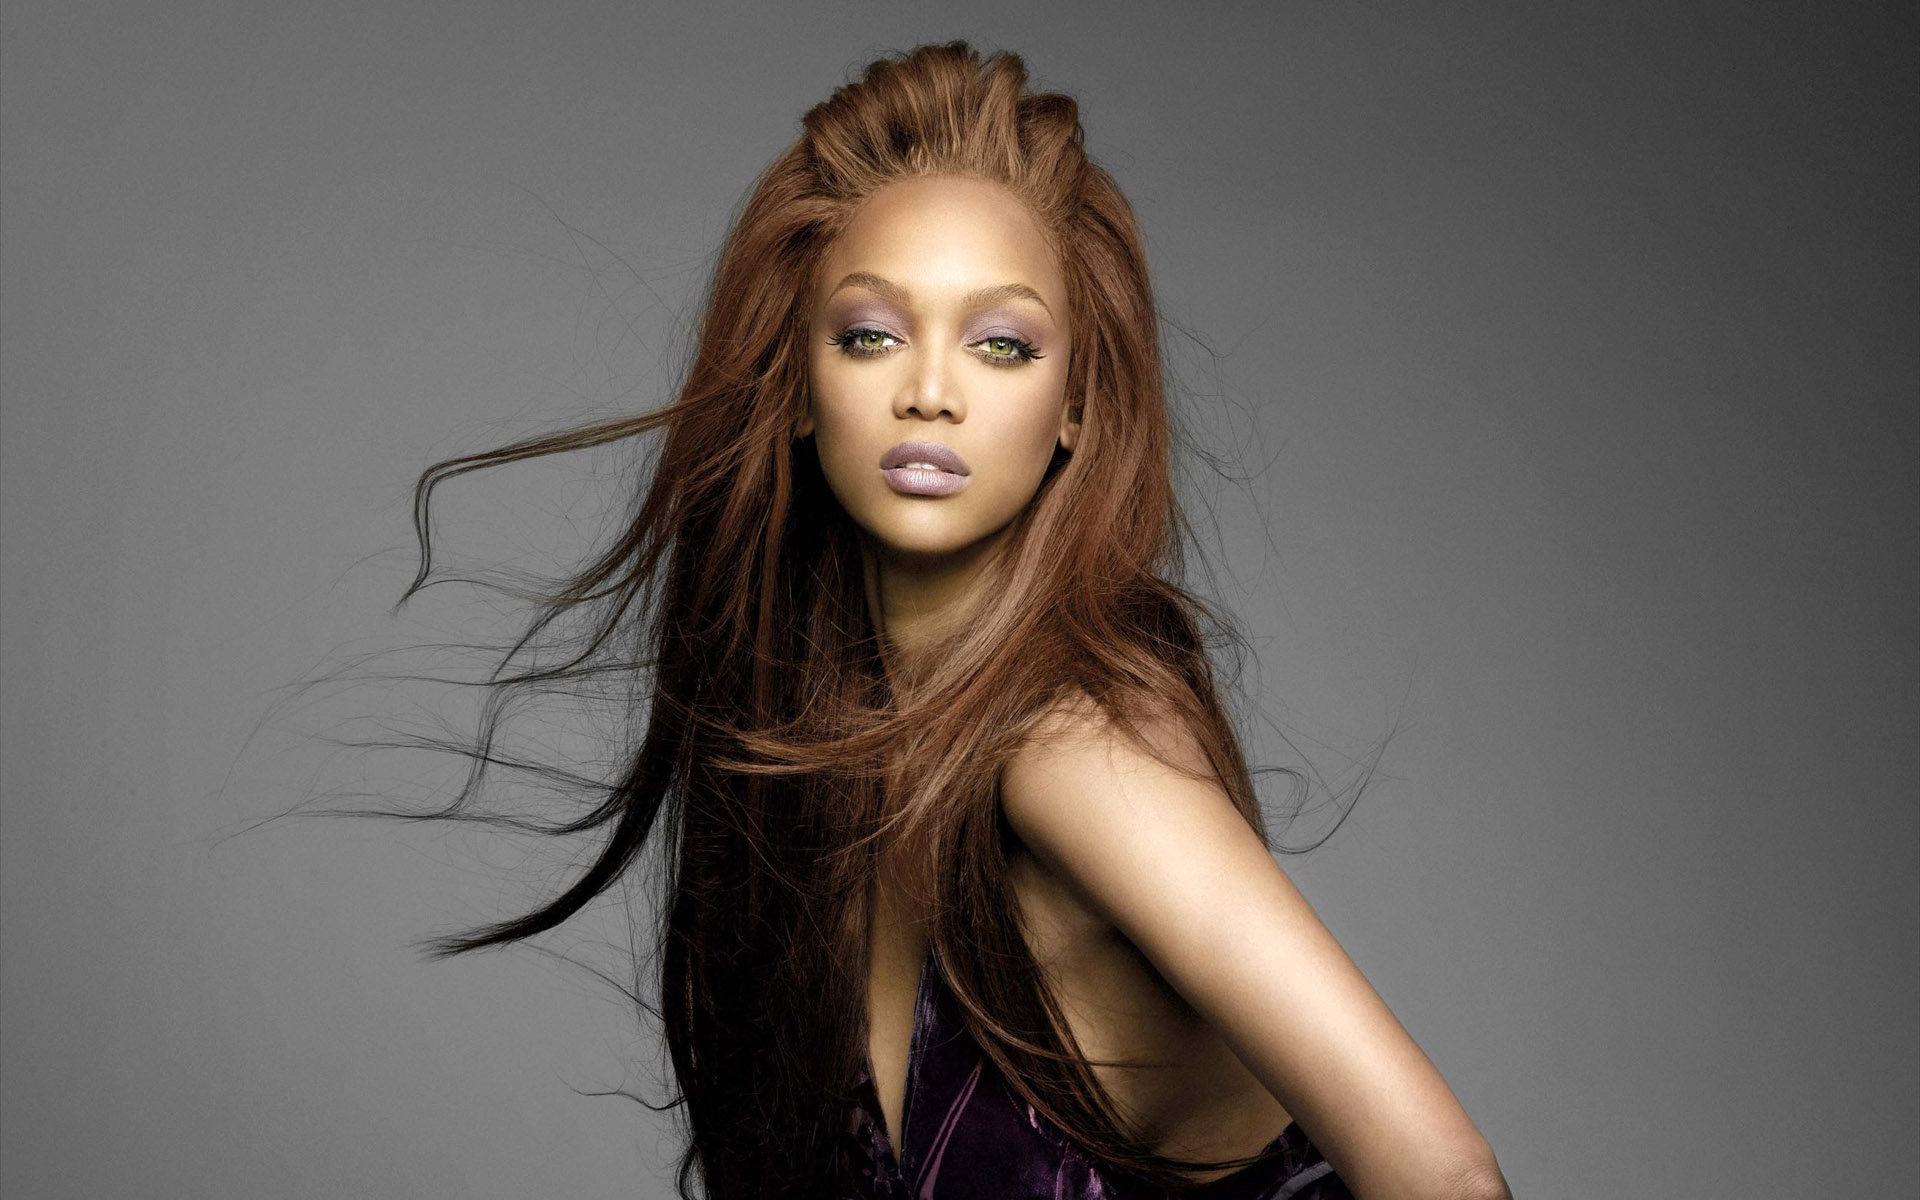 download hd 1920x1200 tyra banks computer background id:456972 for free